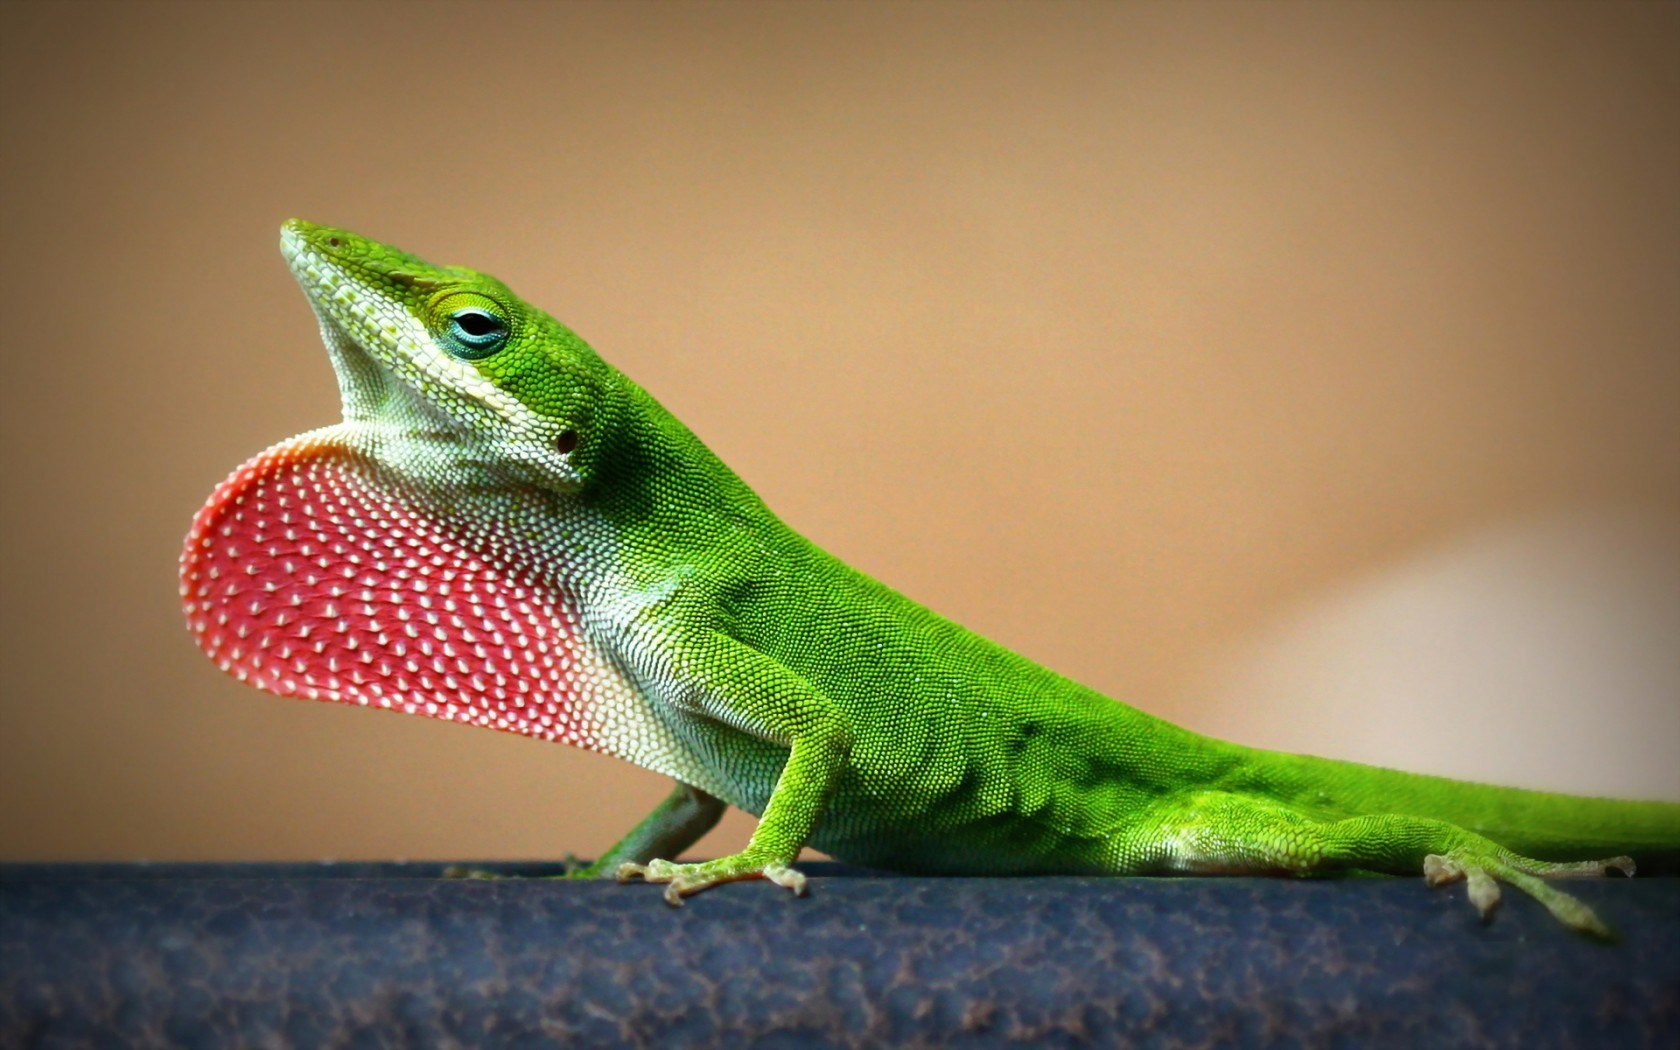 lizard image hd